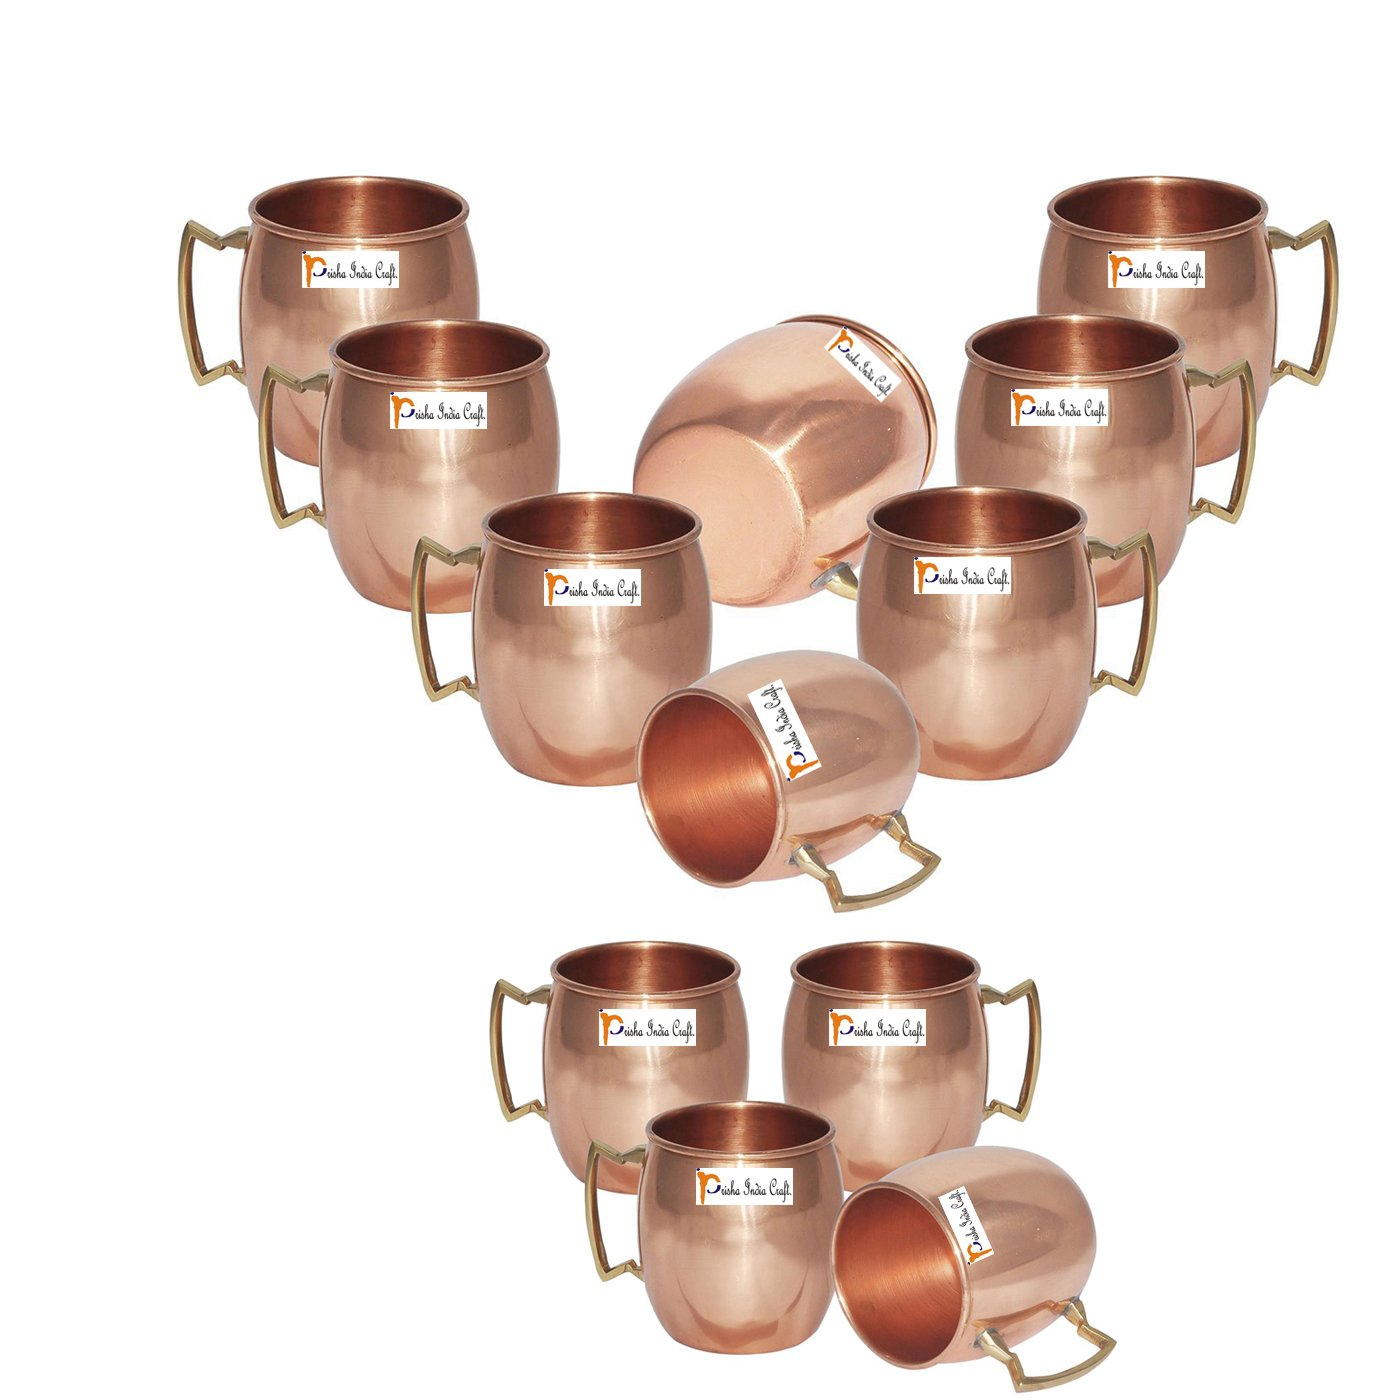 Set of 12 - Prisha India Craft ® Solid Copper Mug for Moscow Mules 550 ML / 18 oz 100% Pure Copper Best Quality Lacquered Finish Mule Cup, Moscow Mule Cocktail Cup, Copper Mugs, Cocktail Mugs